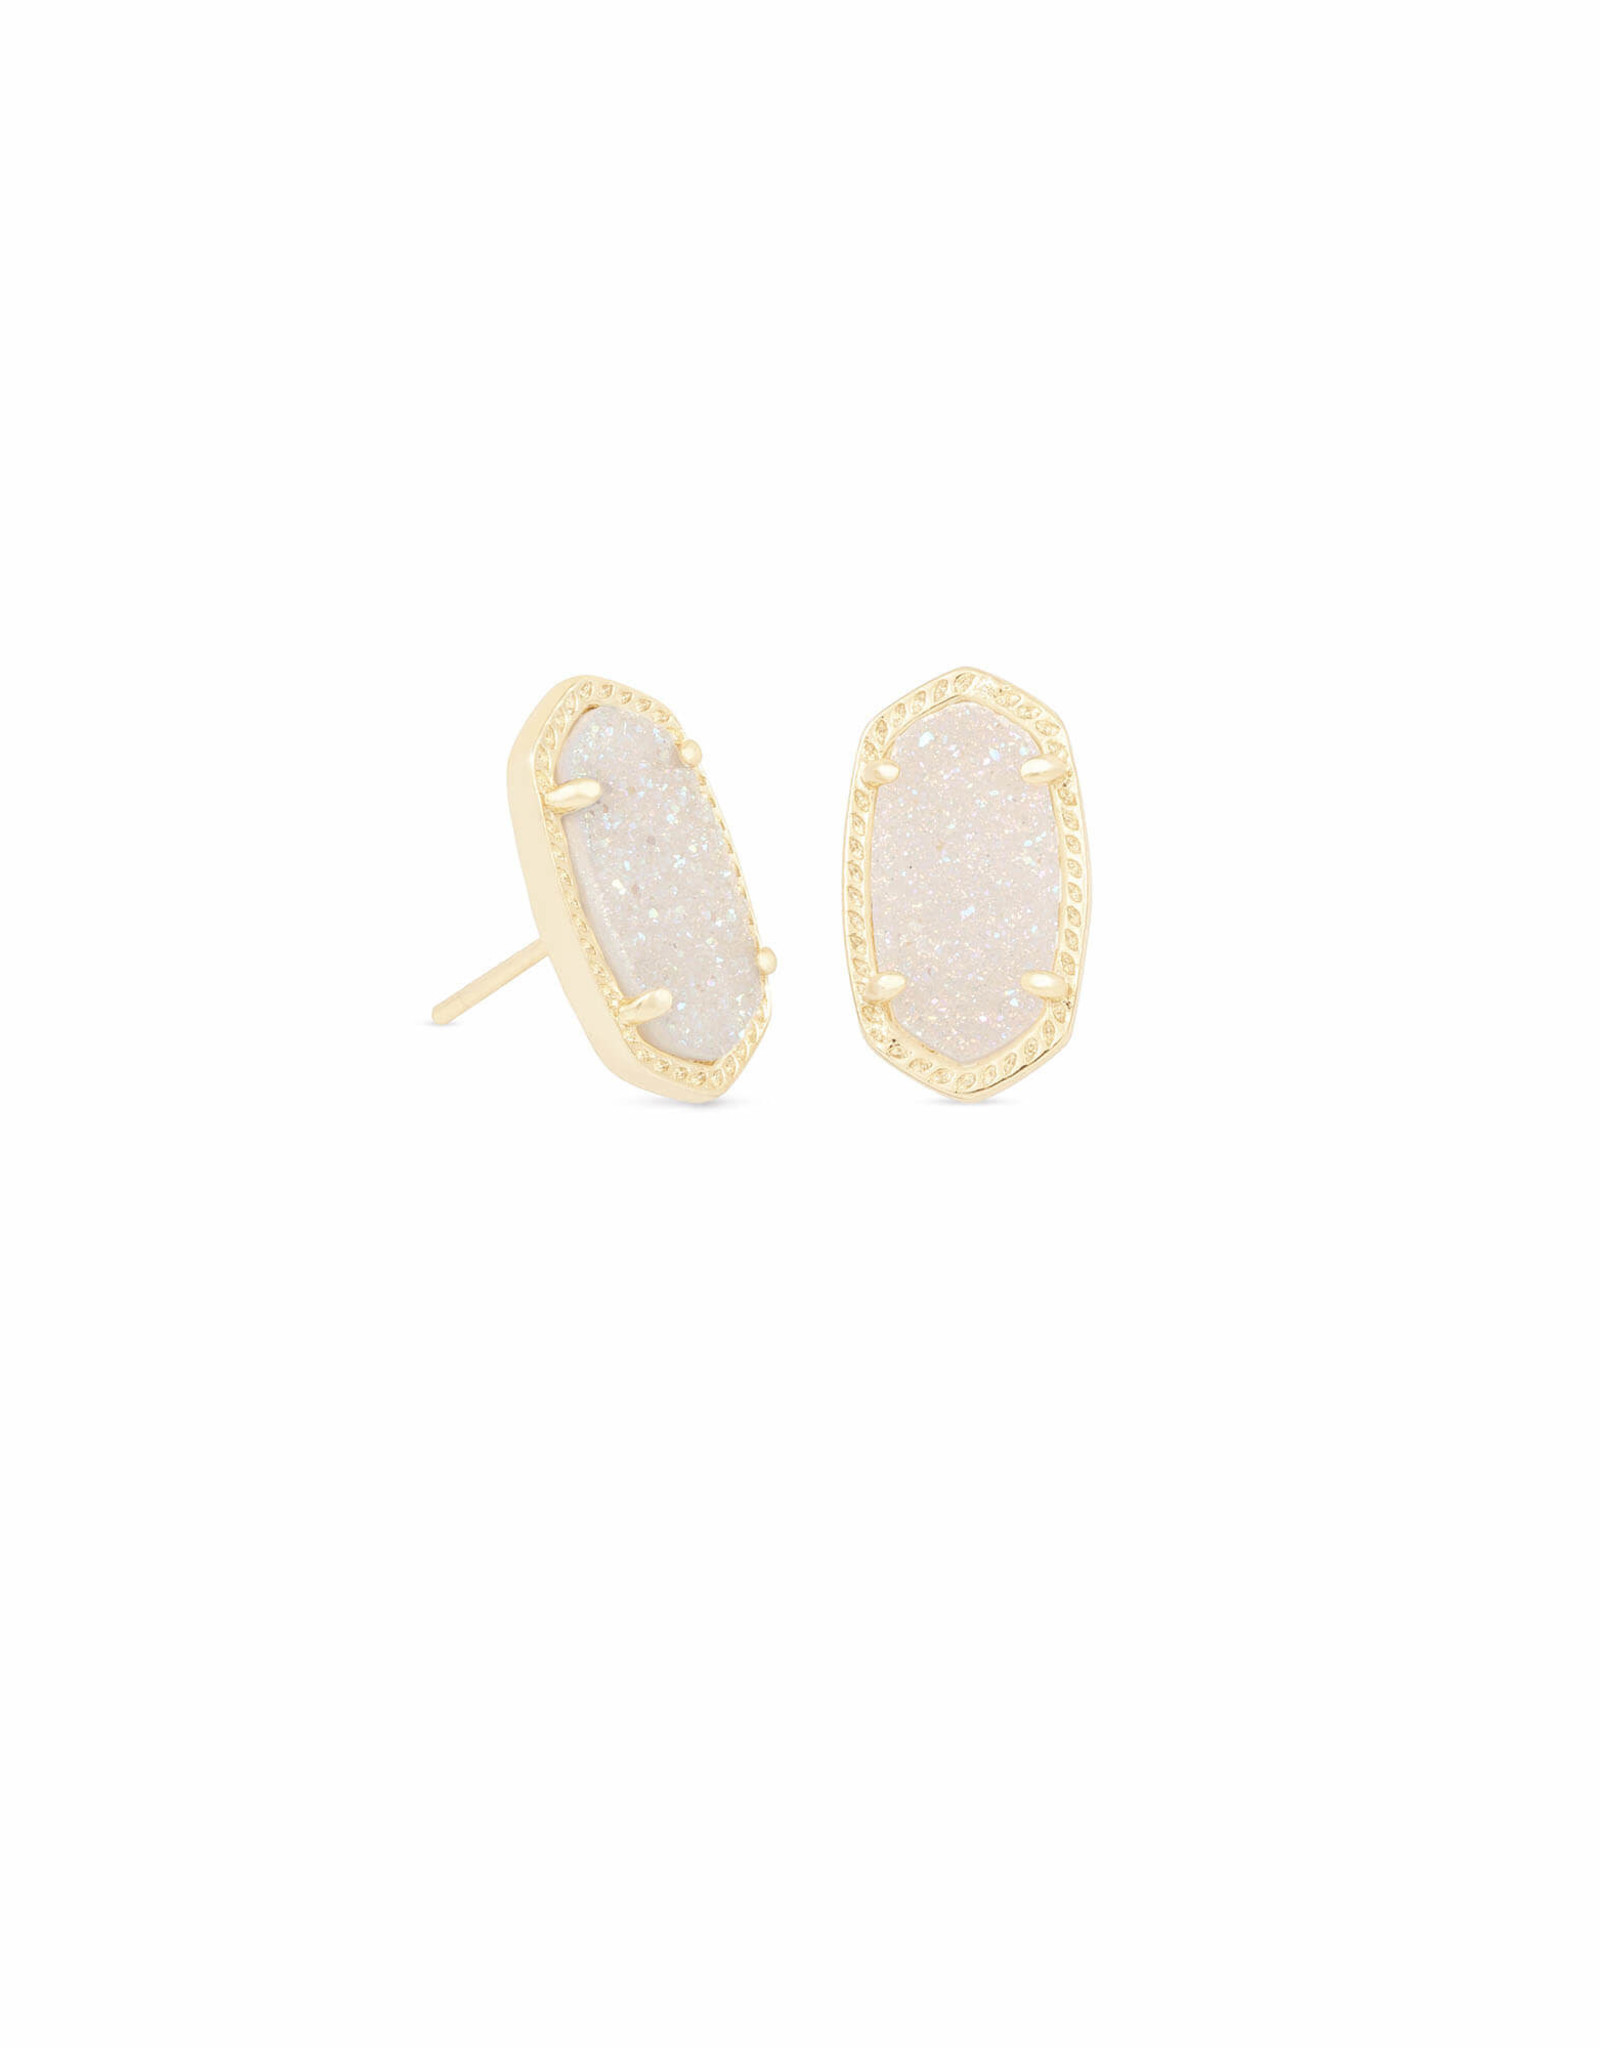 Kendra Scott Ellie Earring - Iridescent Drusy/Gold